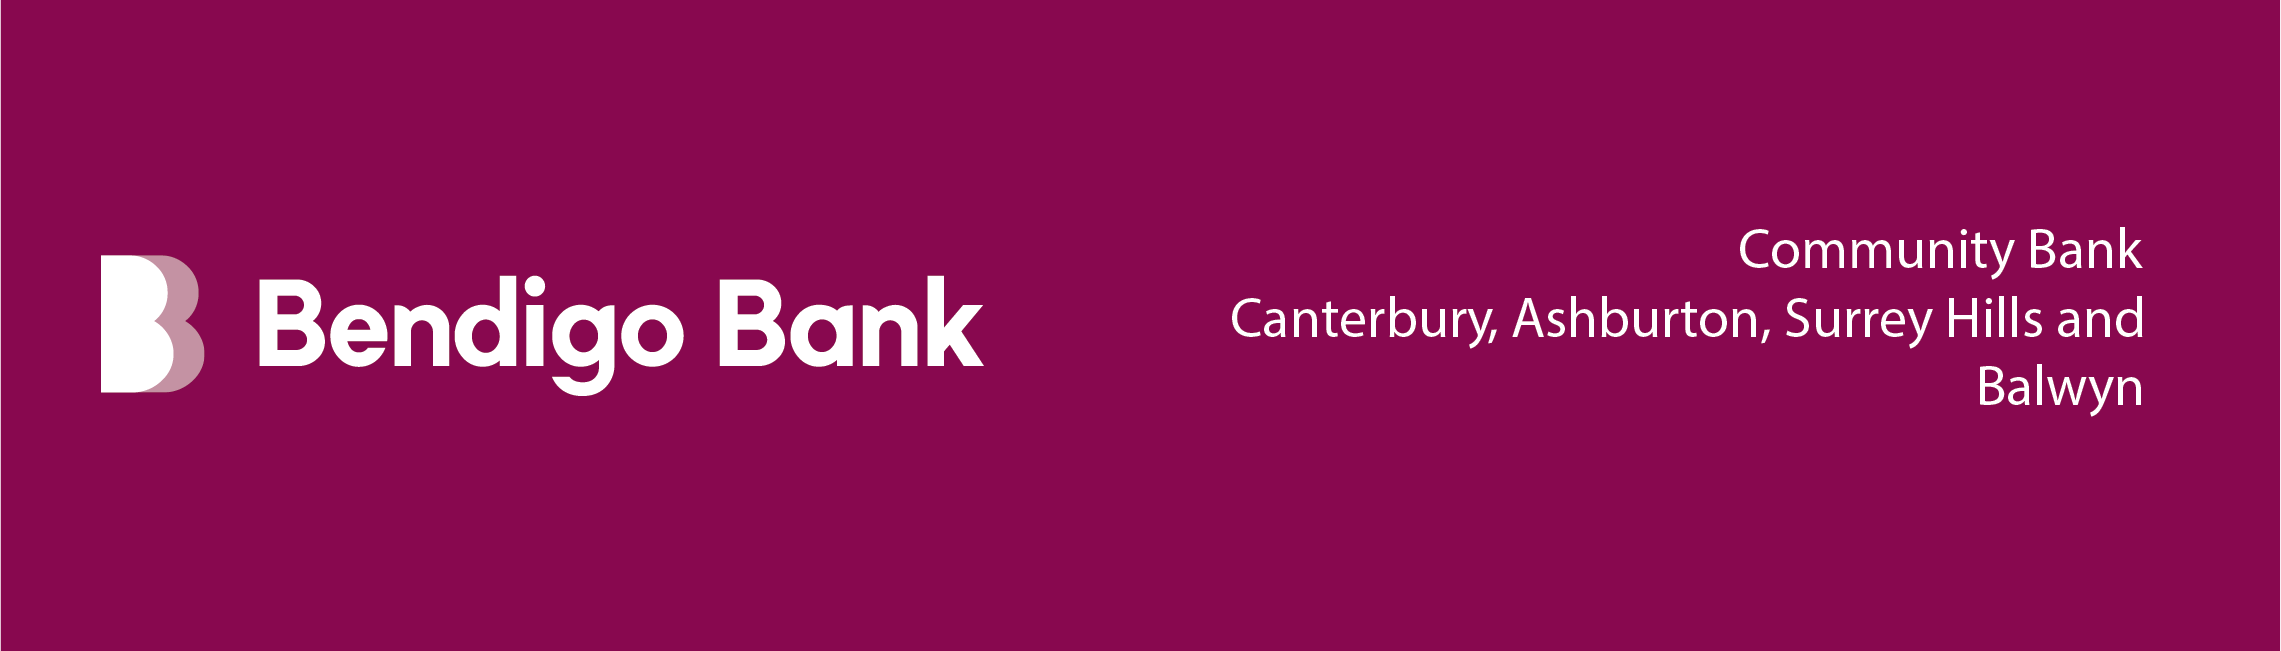 2021 L4Life Lunch With Kitty Event Sponsor - Bendigo Bank